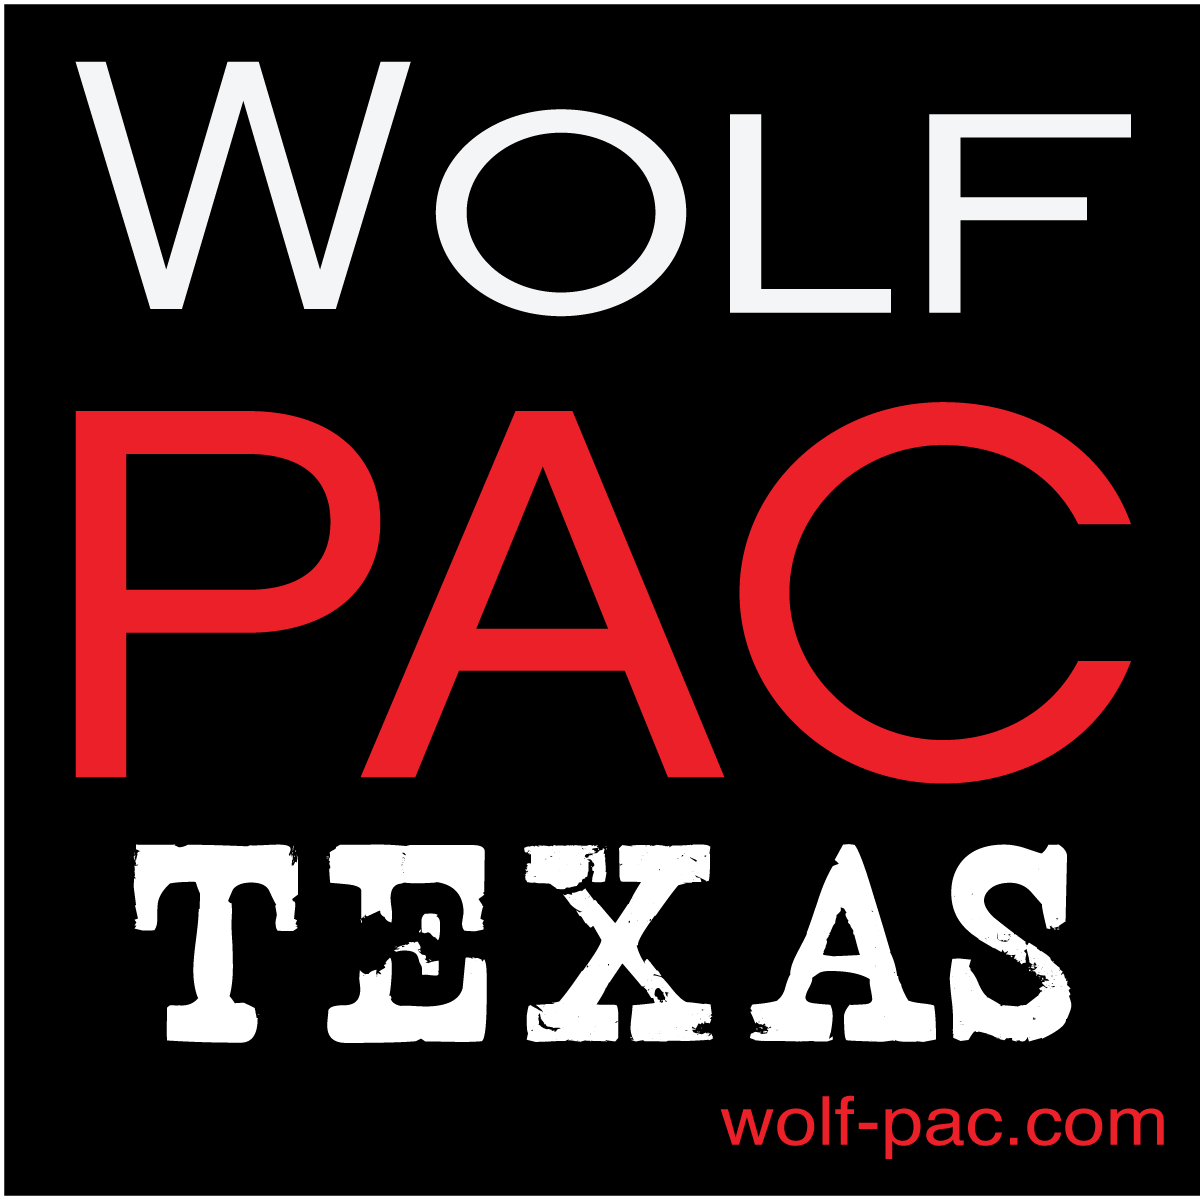 Wolf_Pac_texas_4x4_FINAL.png